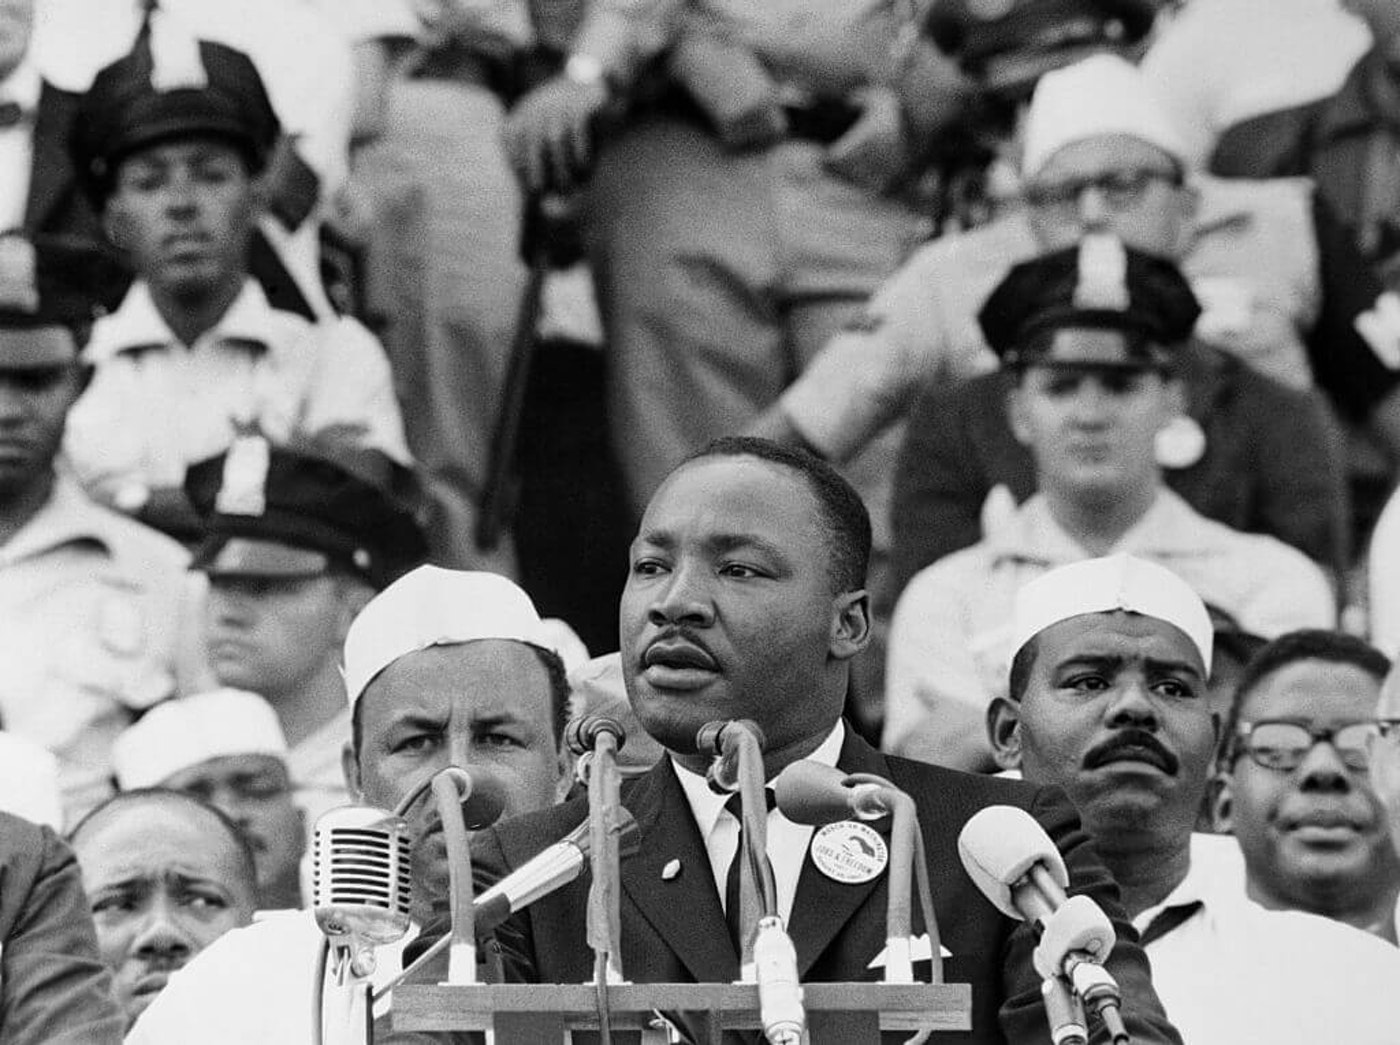 """Martin Luther King Jr., gives his """"I Have a Dream"""" speech to a crowd before the Lincoln Memorial during the Freedom March in Washington, DC, on August 28, 1963. The widely quoted speech became one of his most famous."""